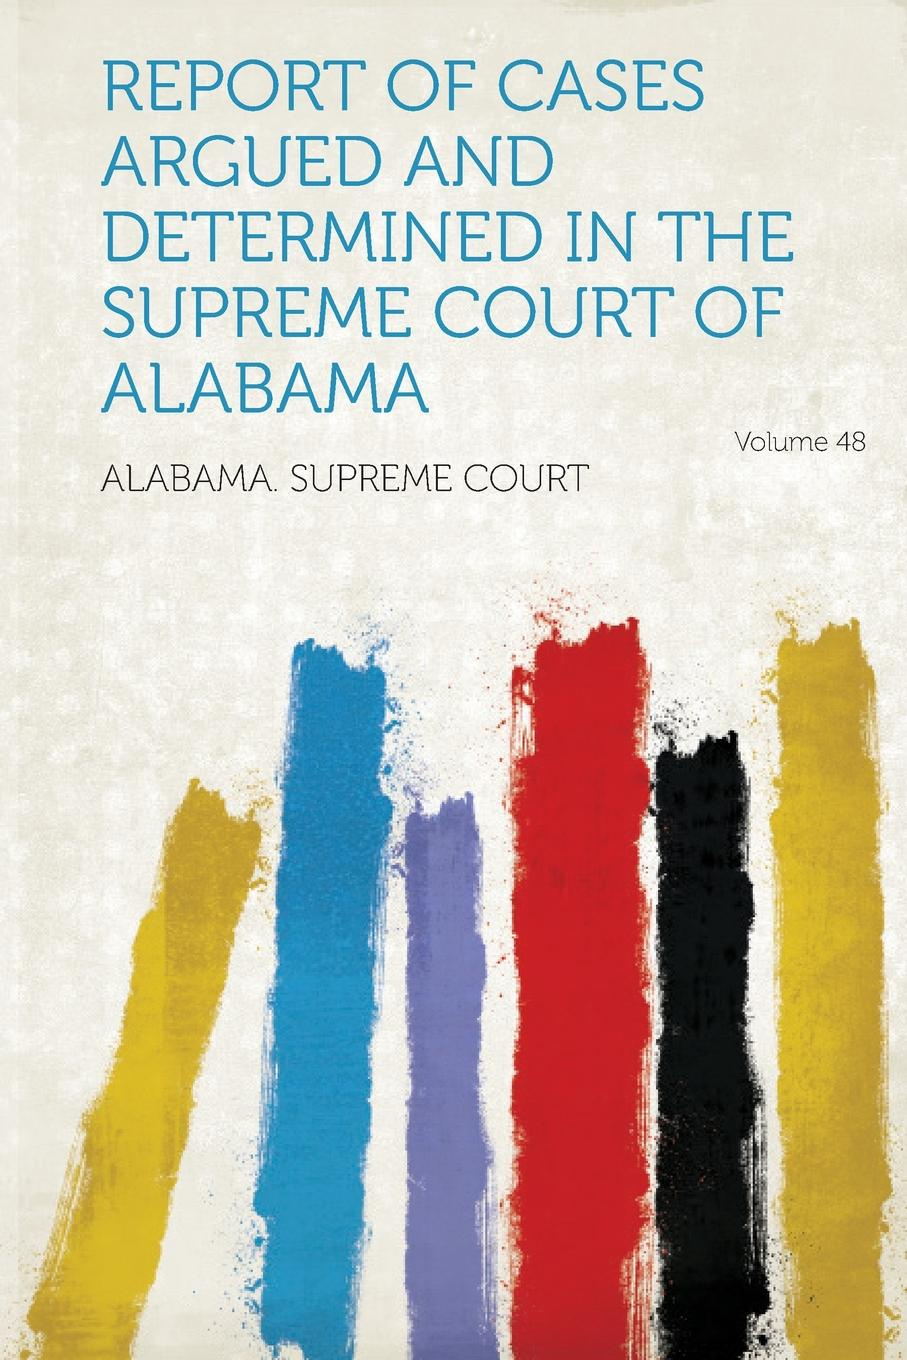 Alabama Supreme Court Report of Cases Argued and Determined in the Supreme Court of Alabama Volume 48